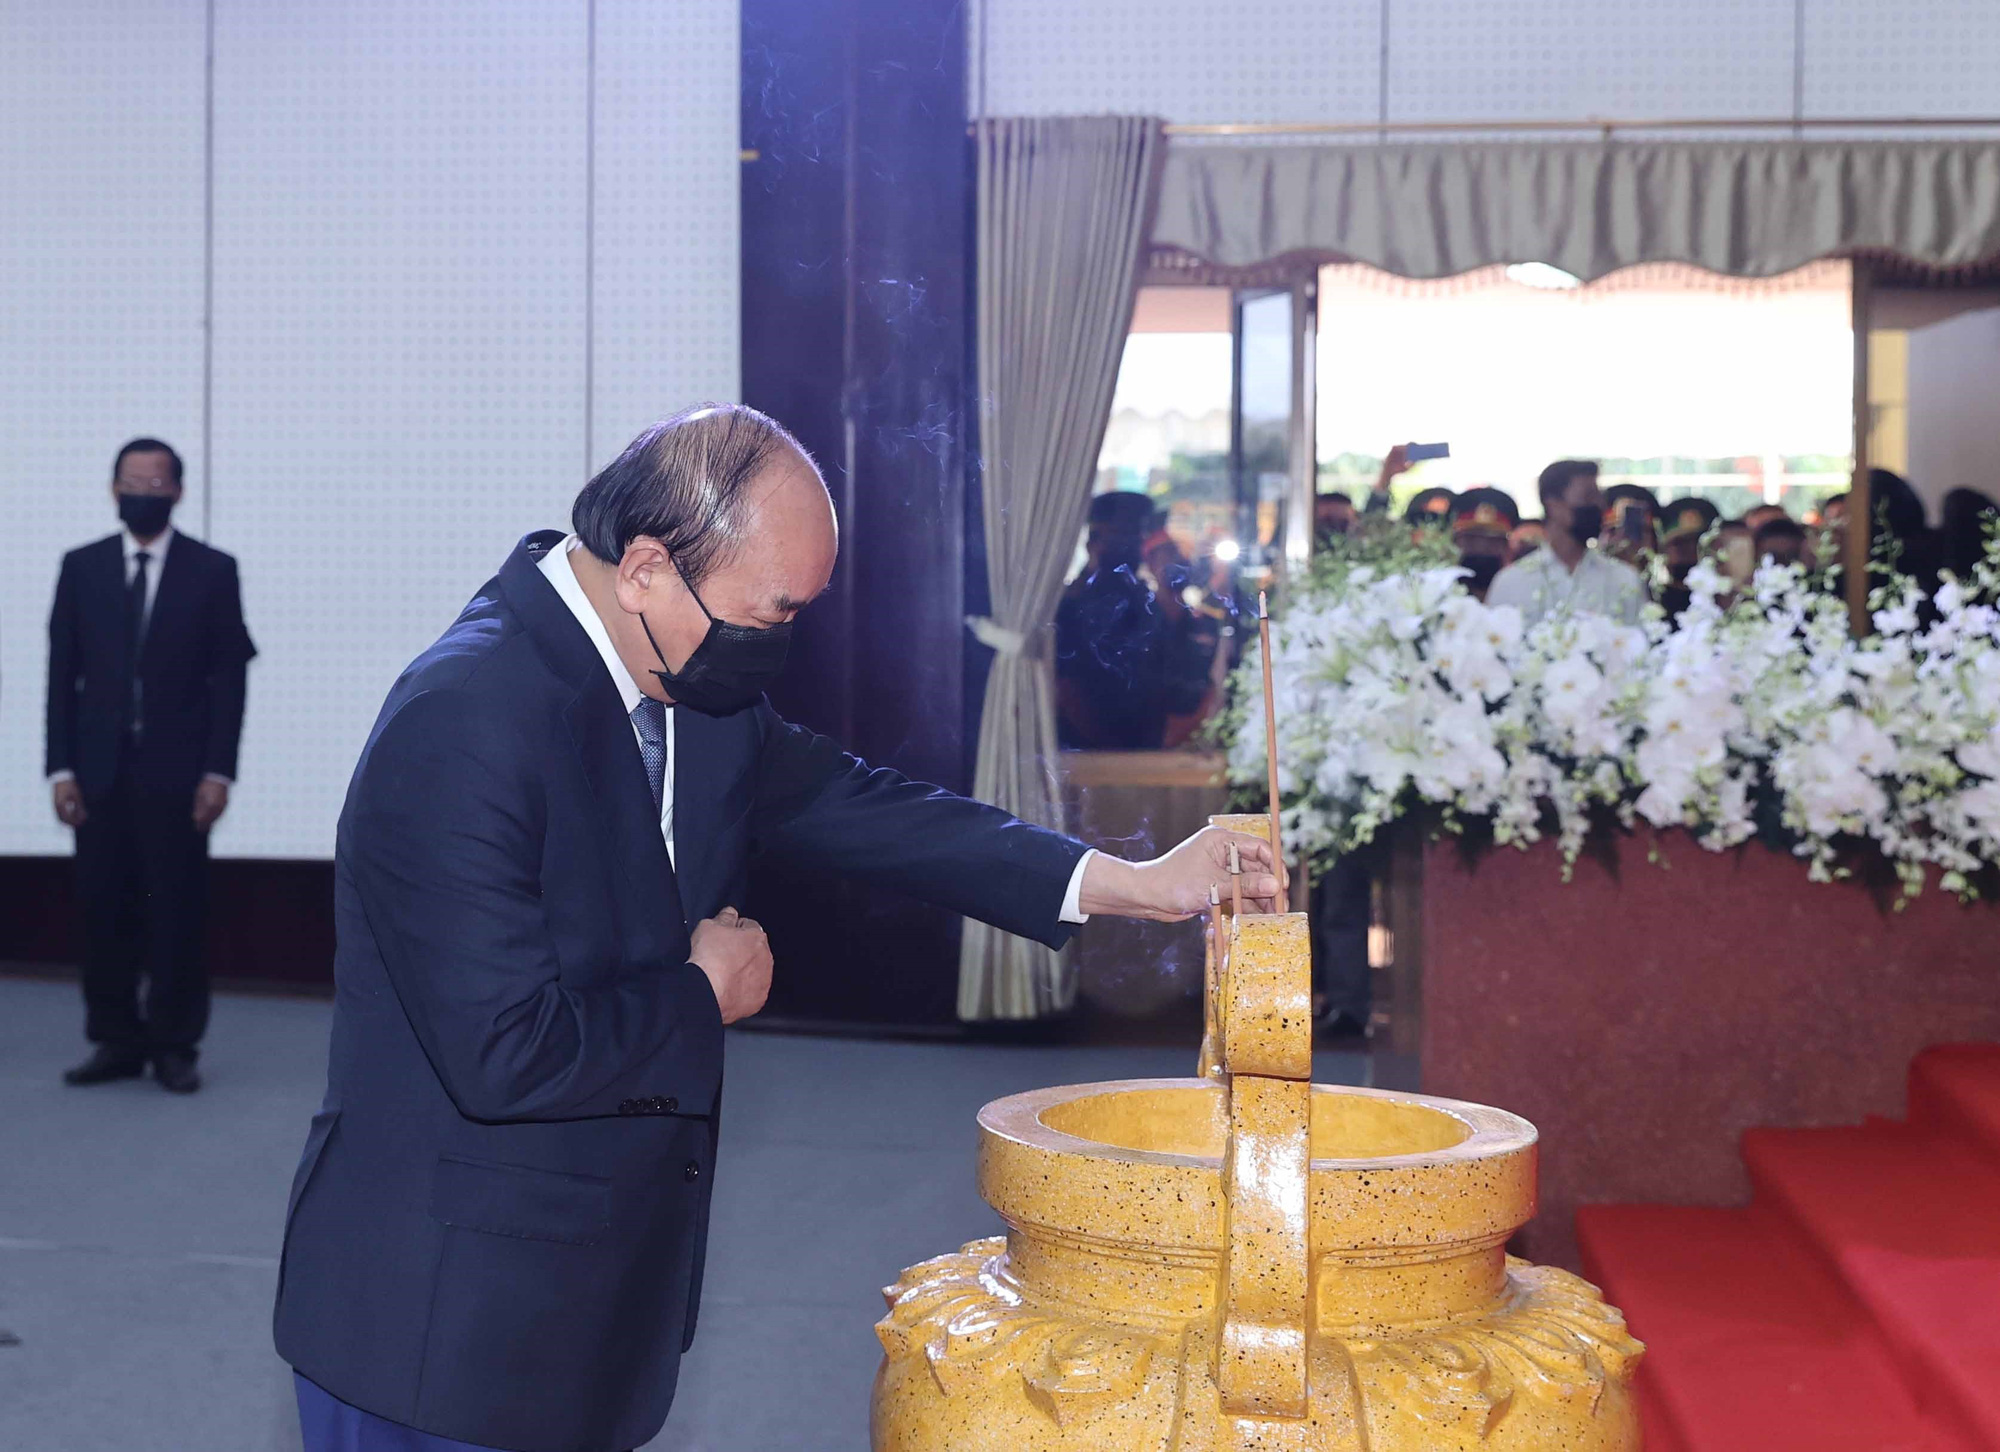 Prime Minister Nguyen Xuan Phuc pays respect to former Deputy PM Truong Vinh Trong in Ben Tre Province, Vietnam, February 21, 2021. Photo: Tu Trung / Tuoi Tre